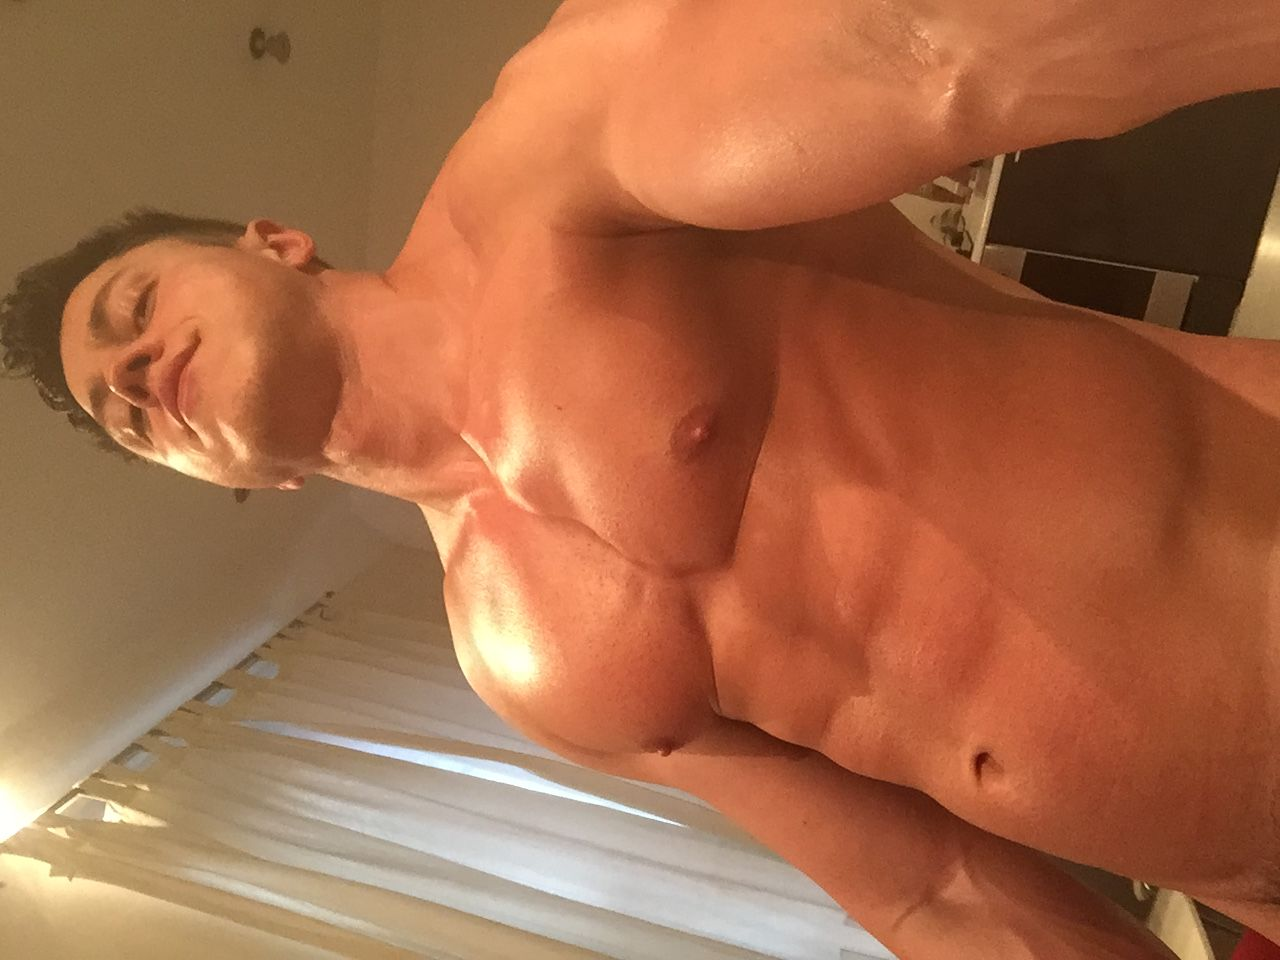 gay massage fræk escort massage nordjylland